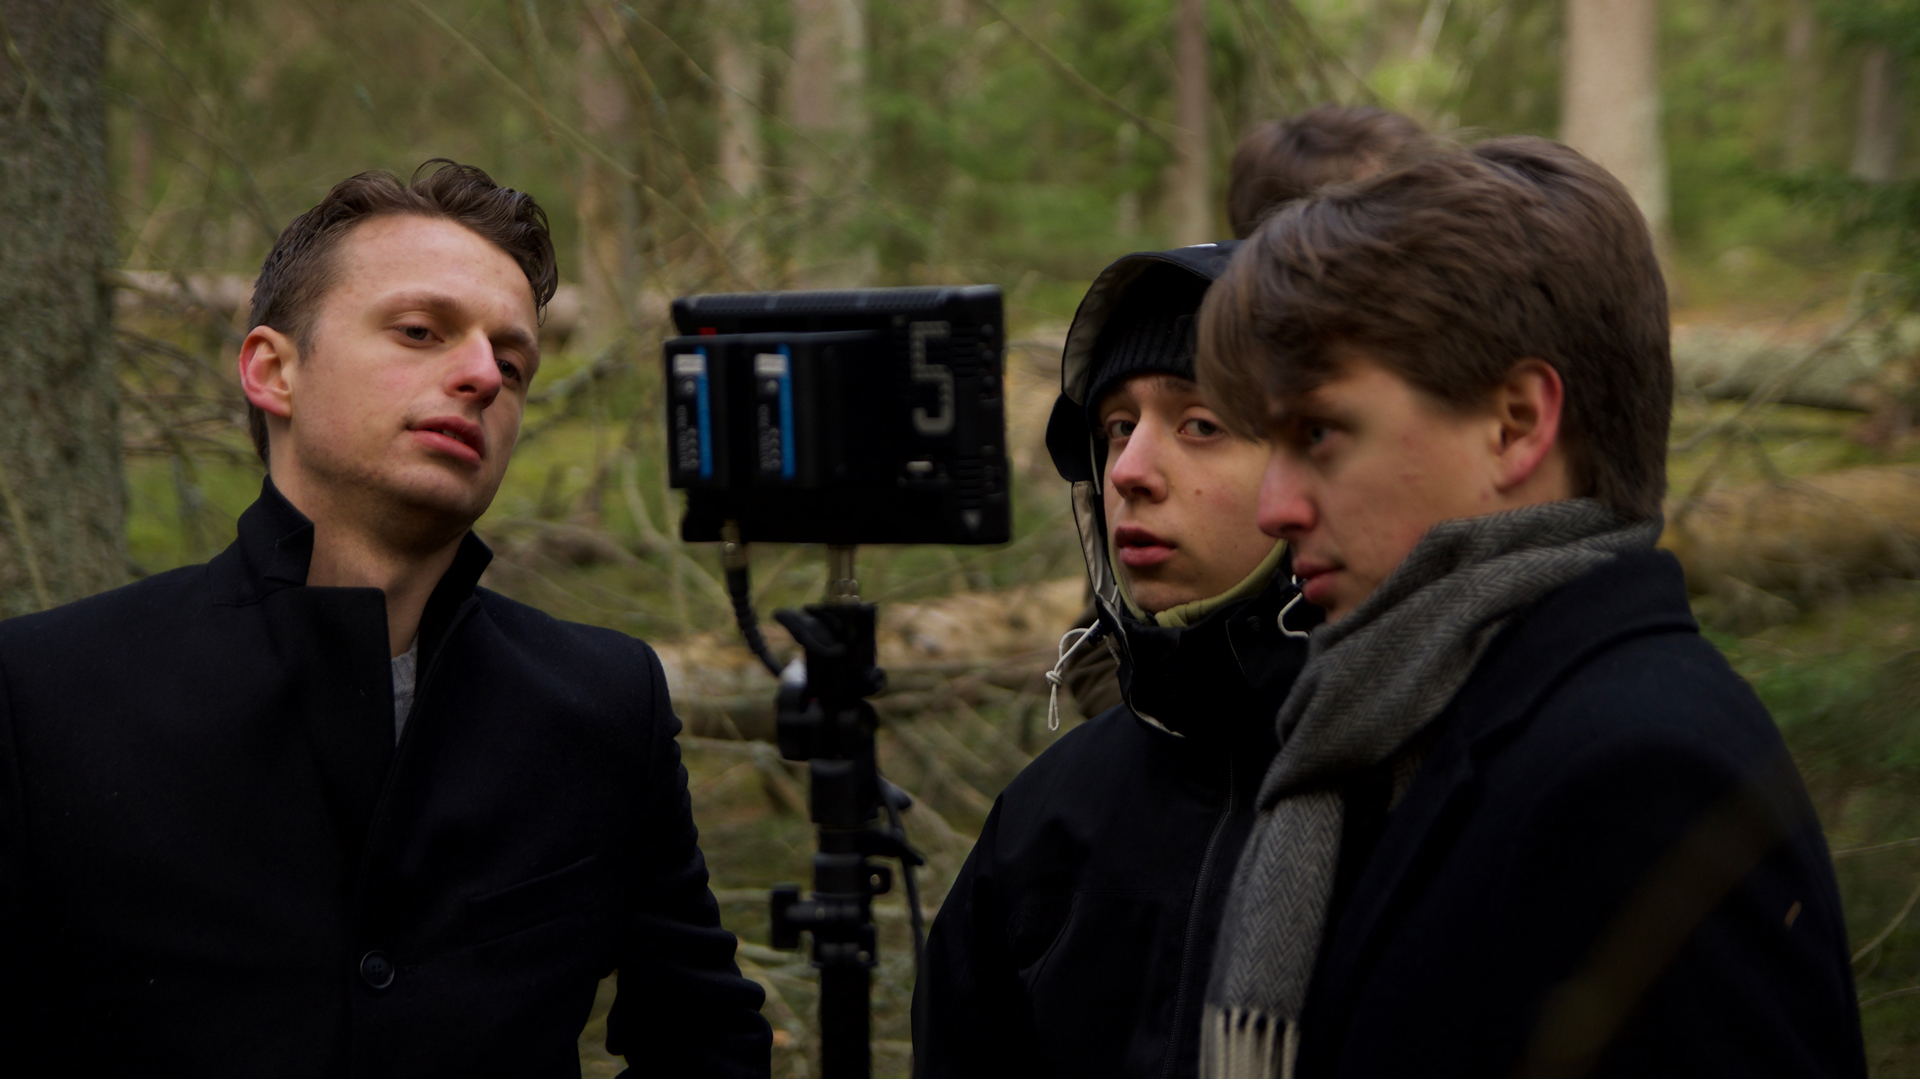 Directors André & Vito Gogola together with 1st Assistant Camera Jesper Wahlqvist